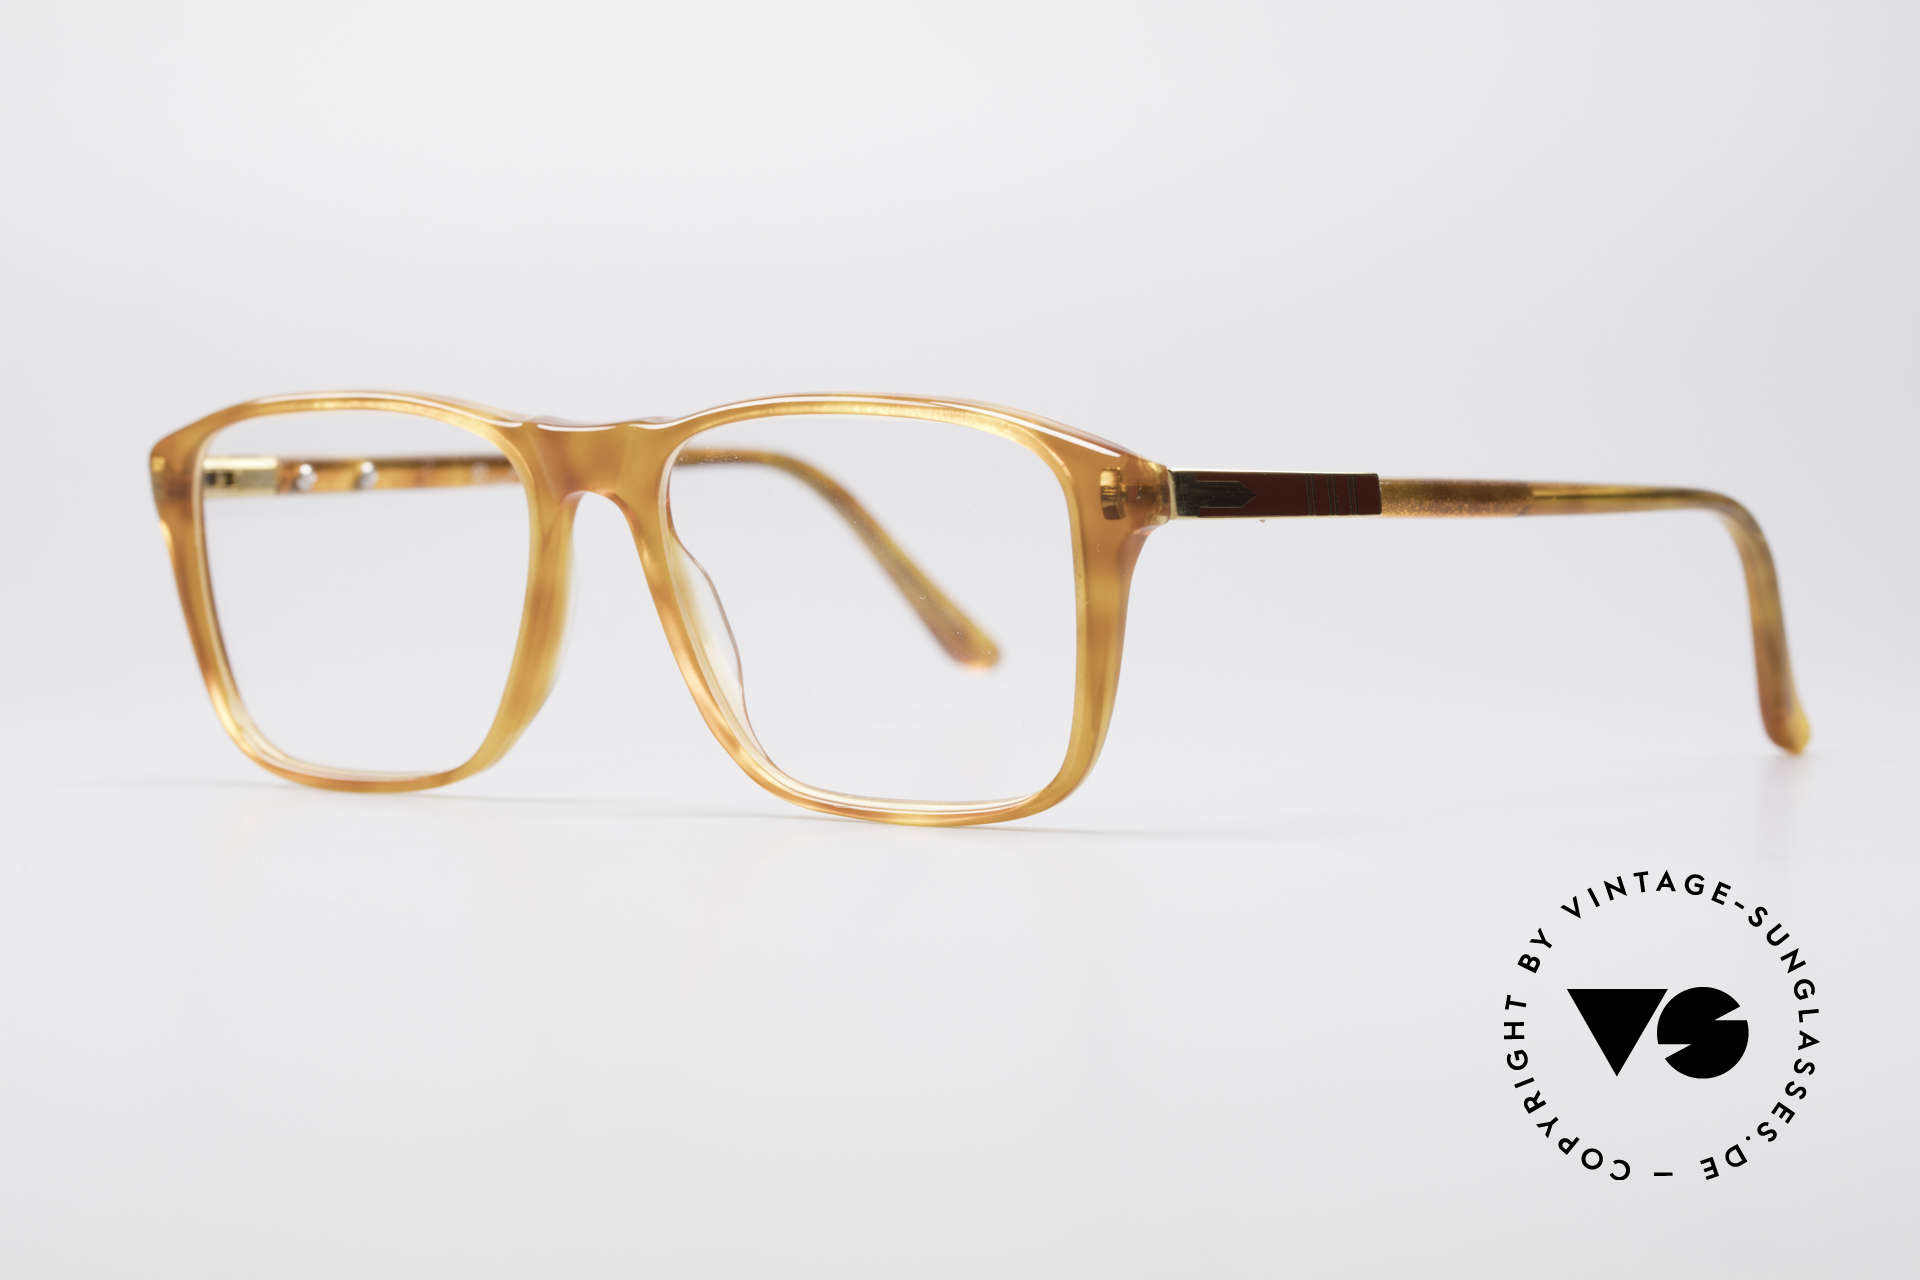 Persol Manager 13 Ratti Gold Plated 80's Frame, sophisticated 'gentlemen's style' & premium quality, Made for Men